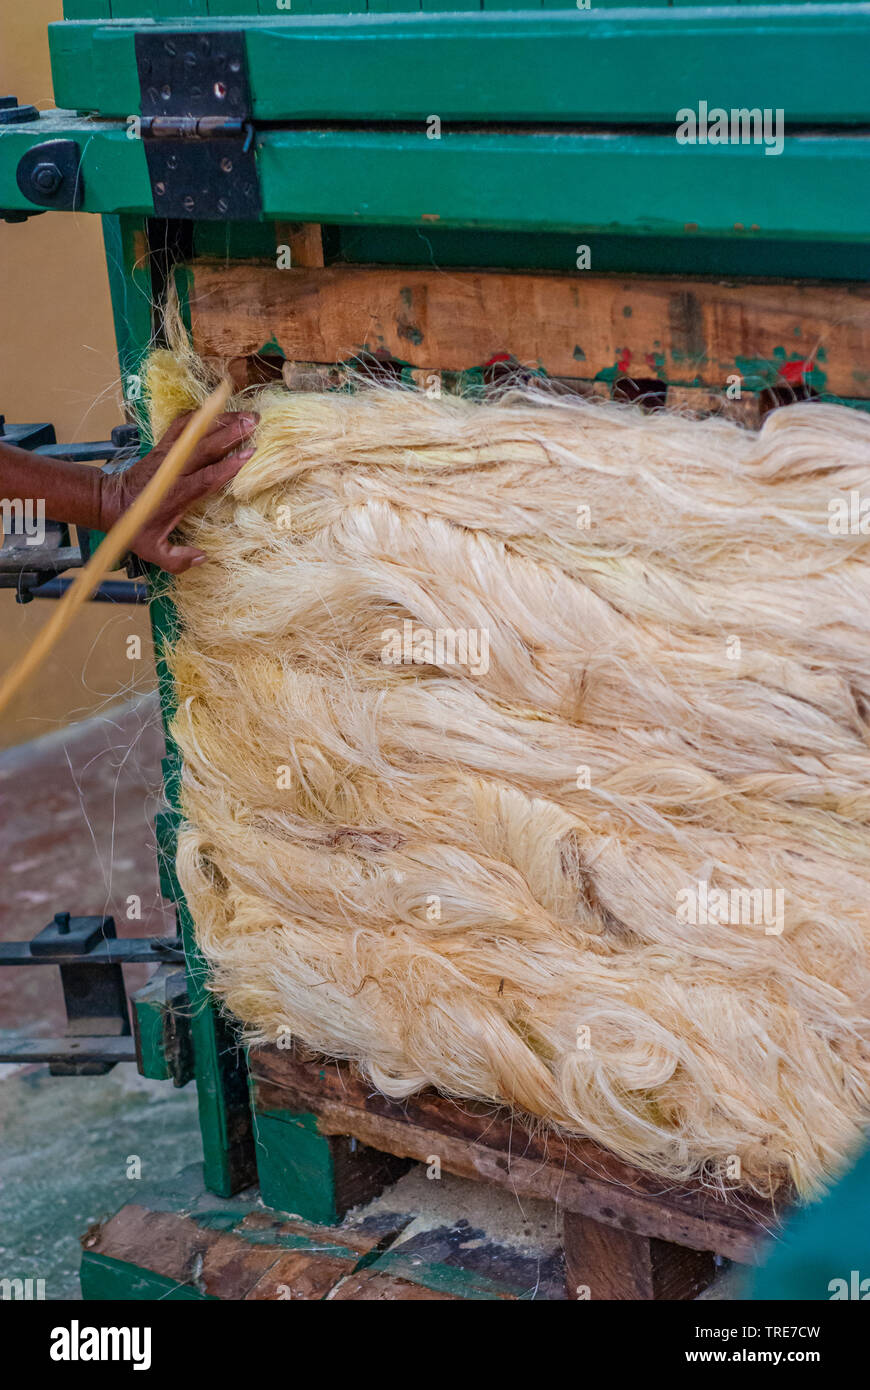 Agave plant fibers in compression, used to build ropes, taken from Tecoh, in the Yucatan peninsula - Stock Image